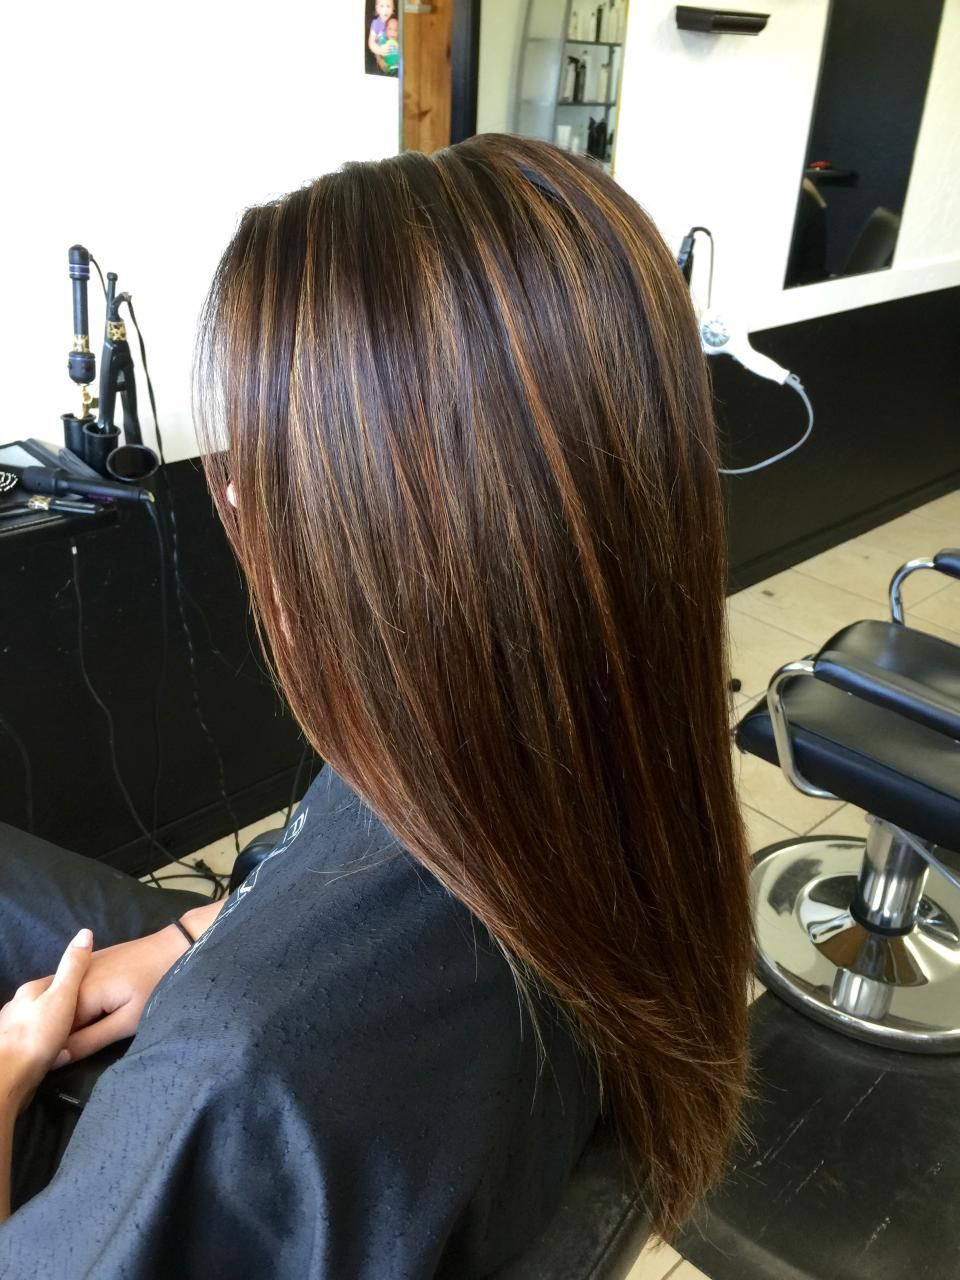 Caramel Highlights Brown Hair And Dark Brown On Pinterest Hair Styles Brown Hair With Caramel Highlights Hair Highlights